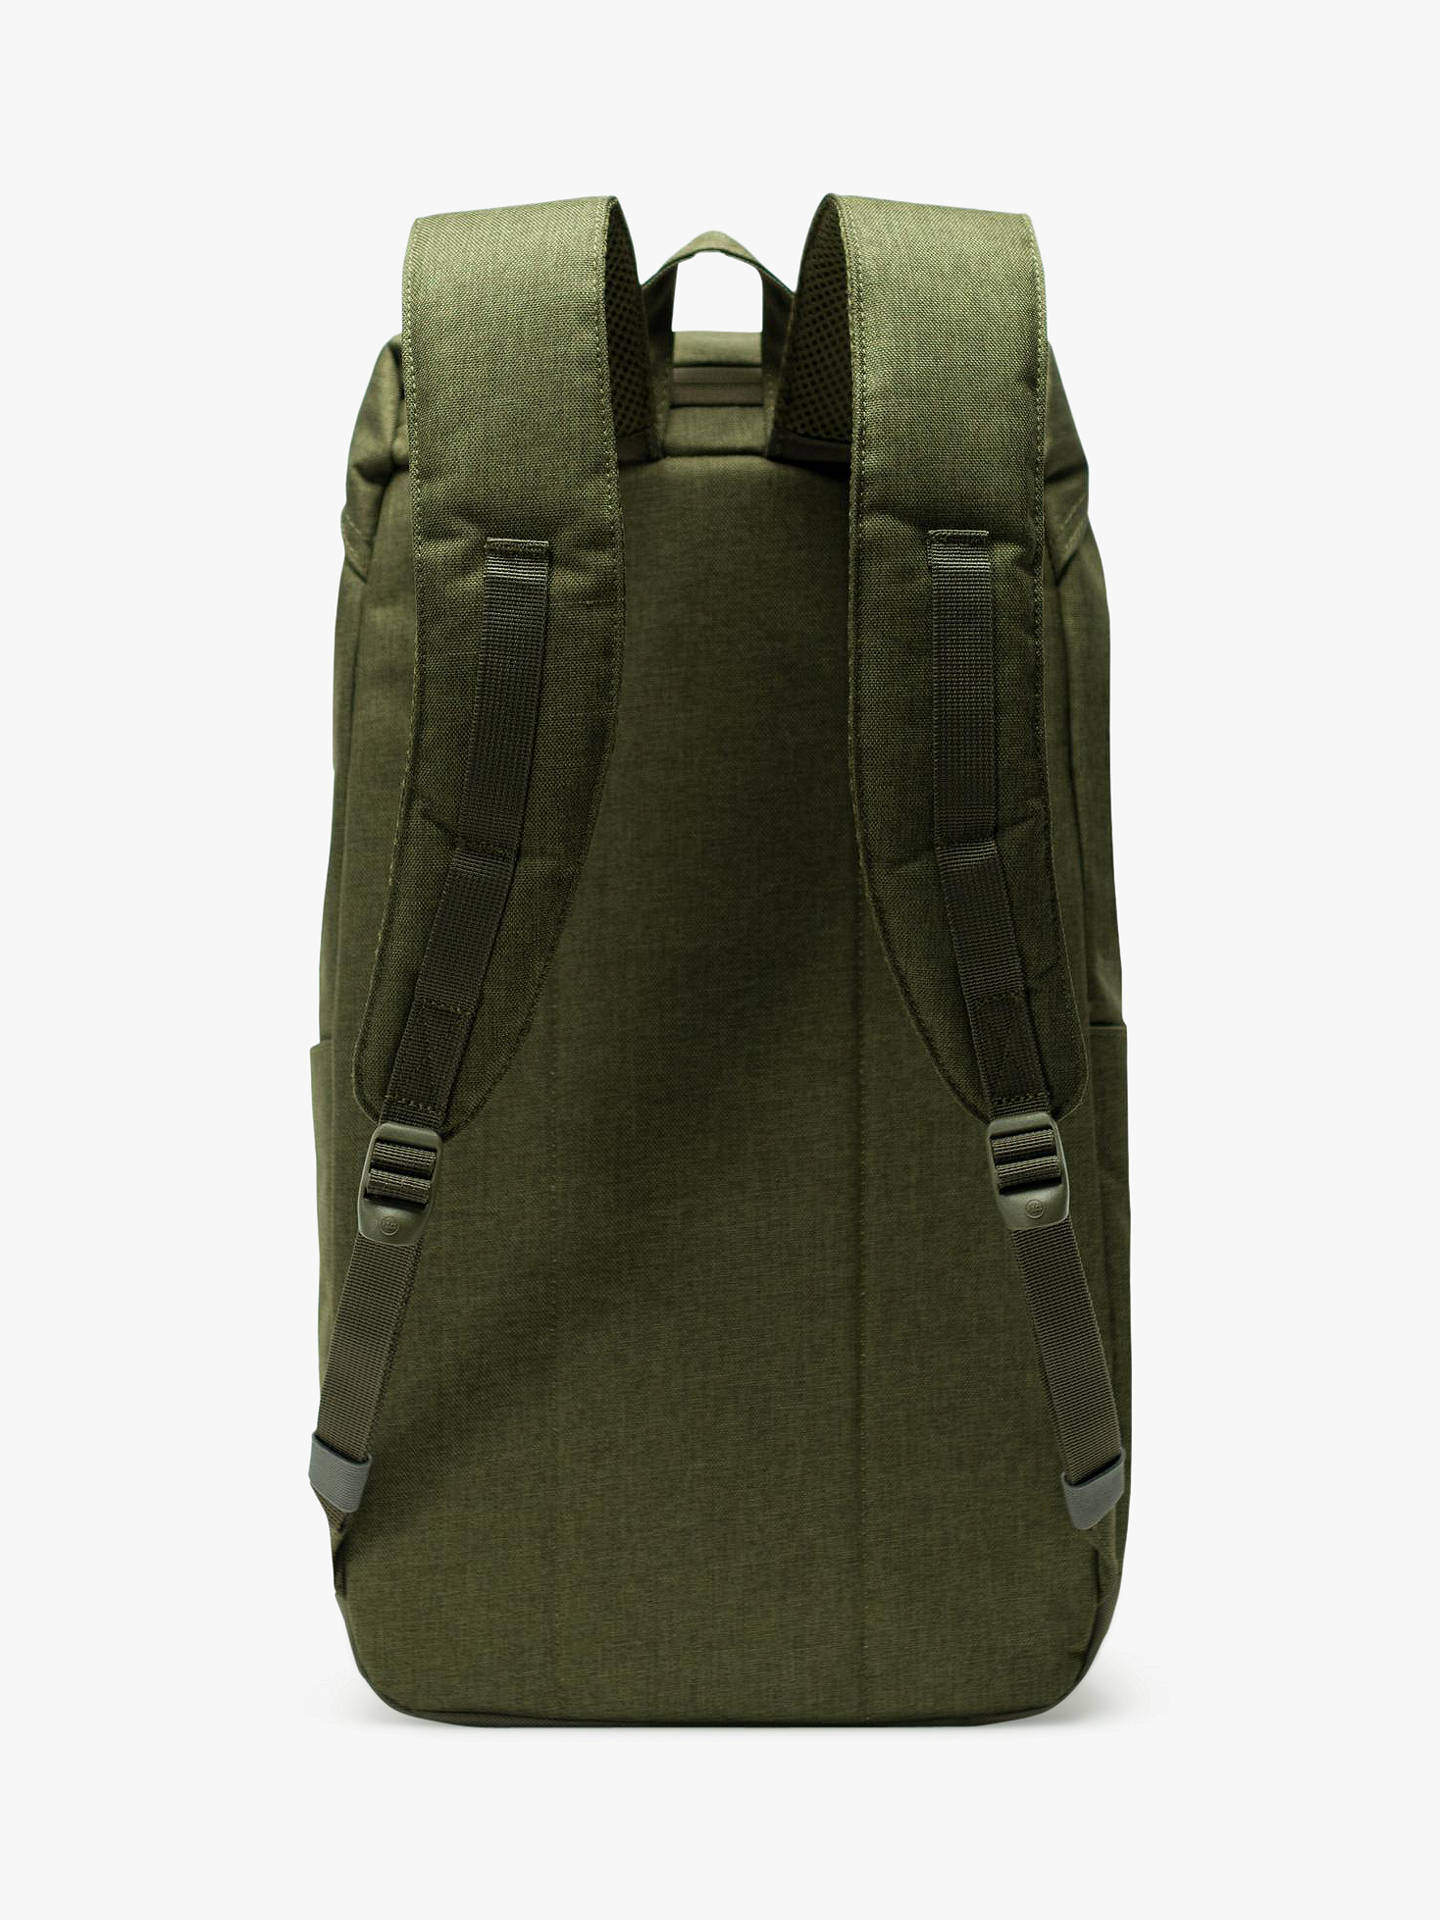 8f5678d2a724 Herschel Supply Co. Thompson Backpack at John Lewis   Partners